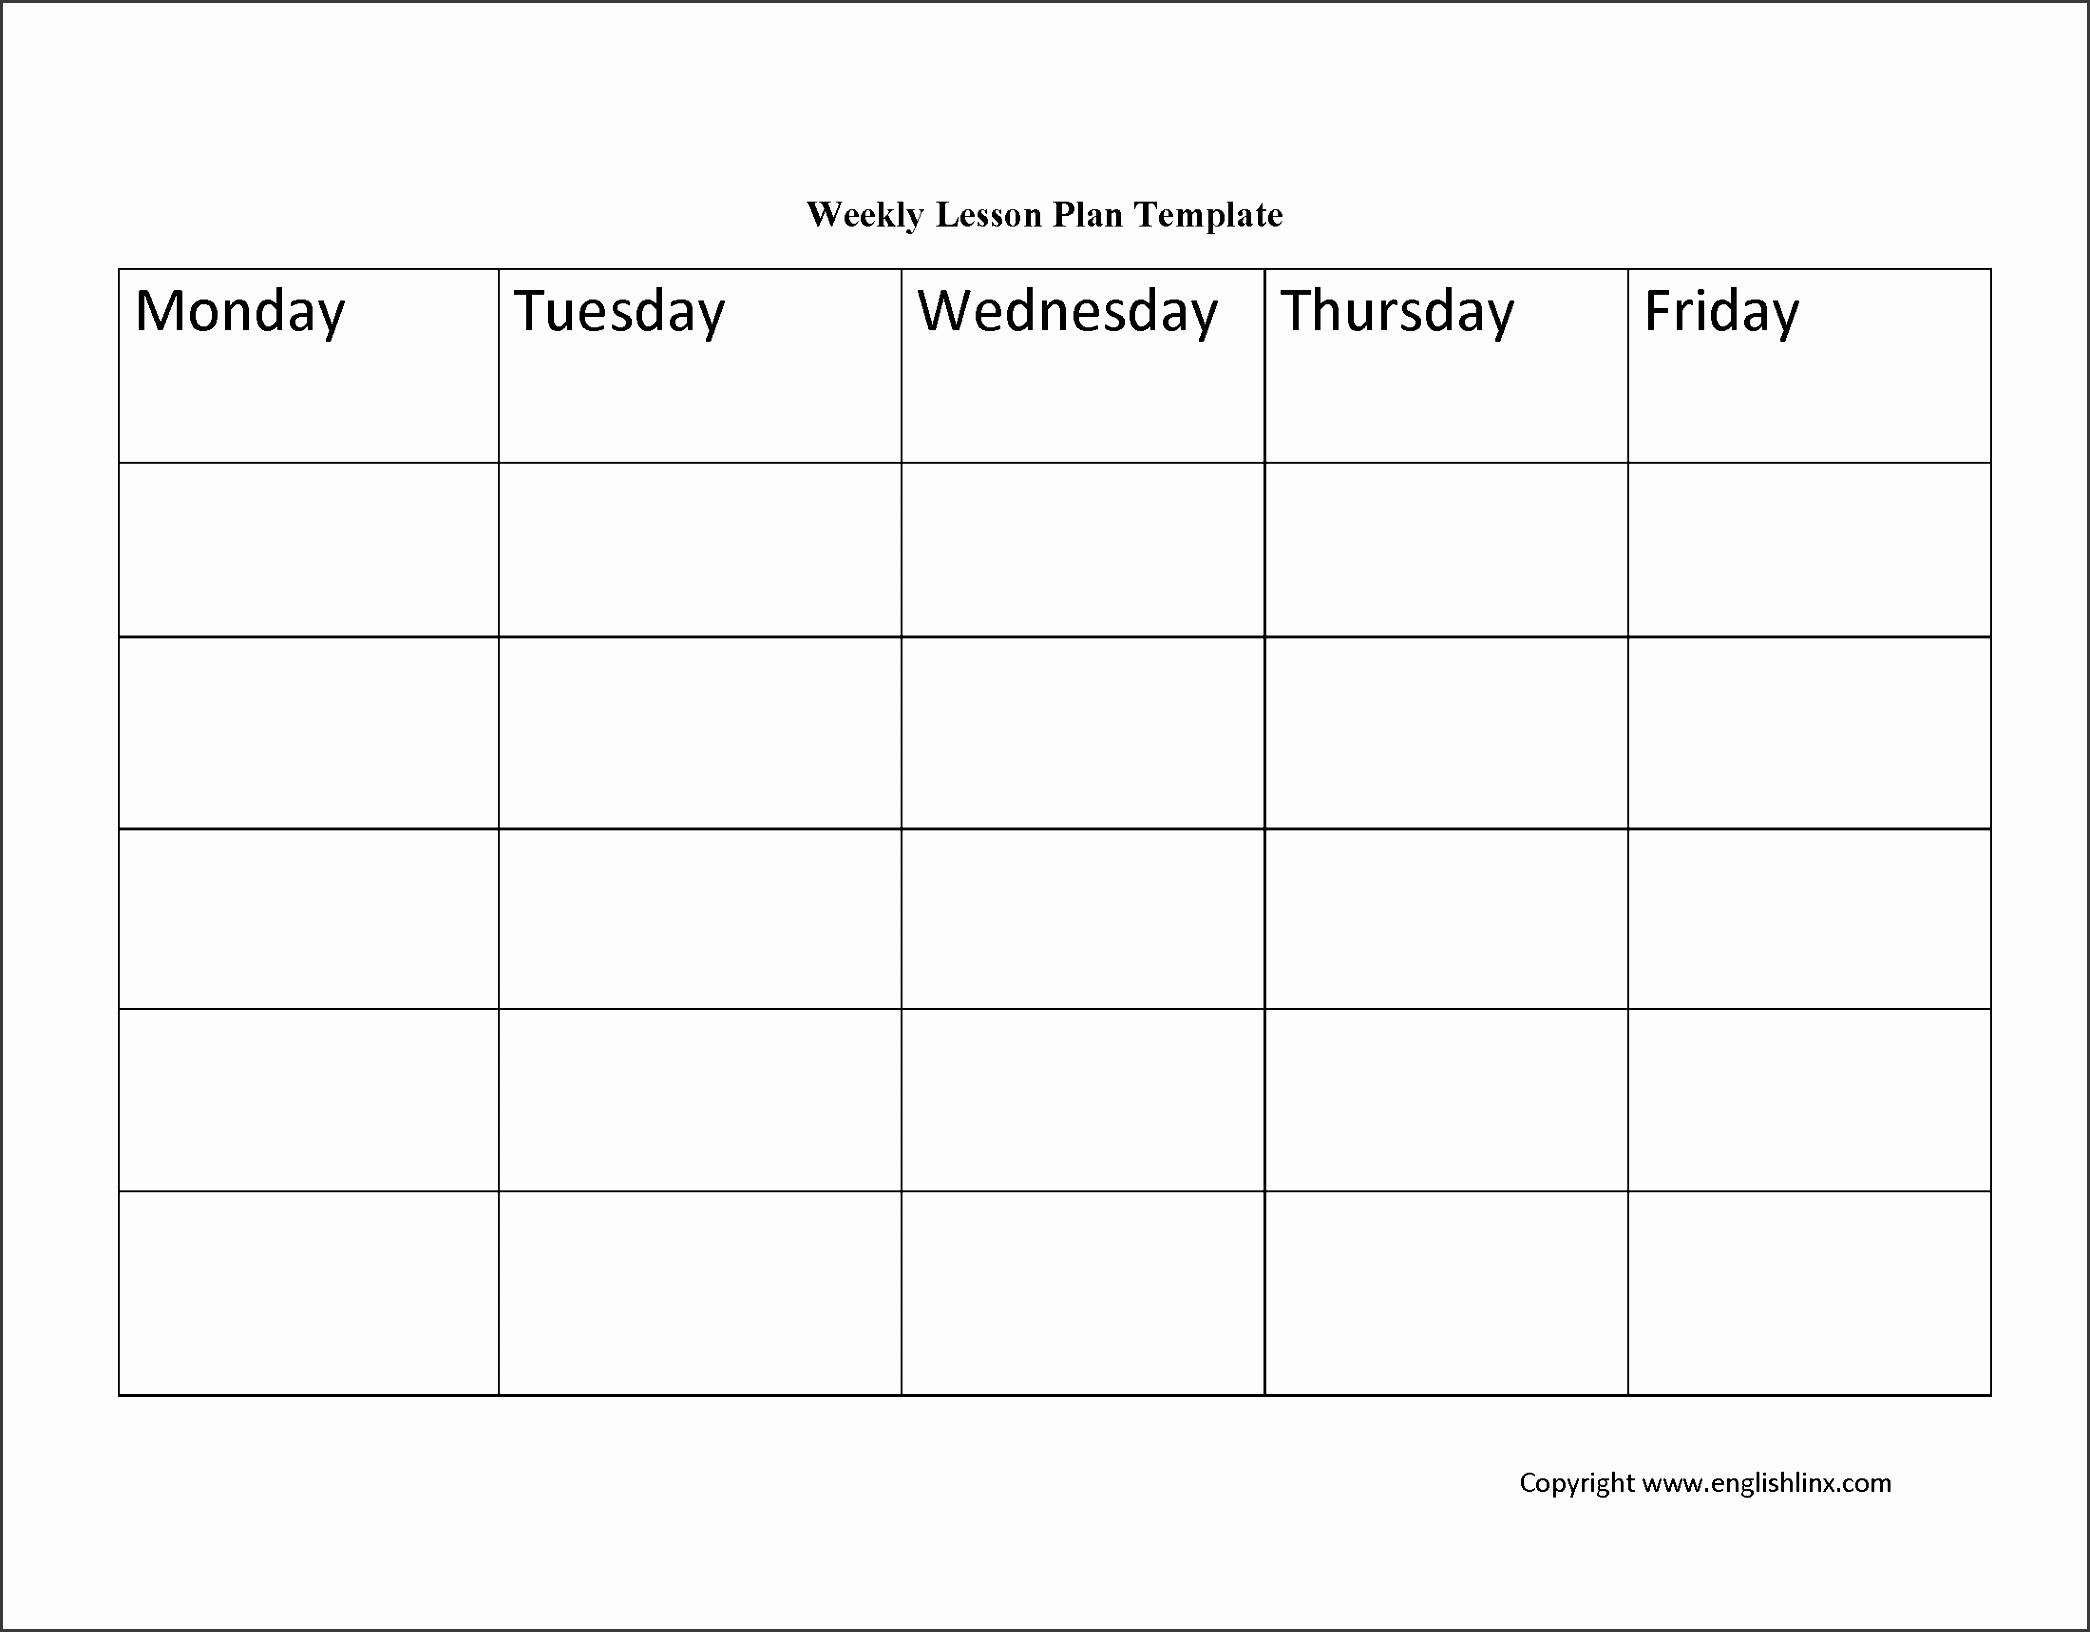 Printable Weekly Lesson Plan Templates Awesome 10 Academic Lesson Planner Template Sampletemplatess